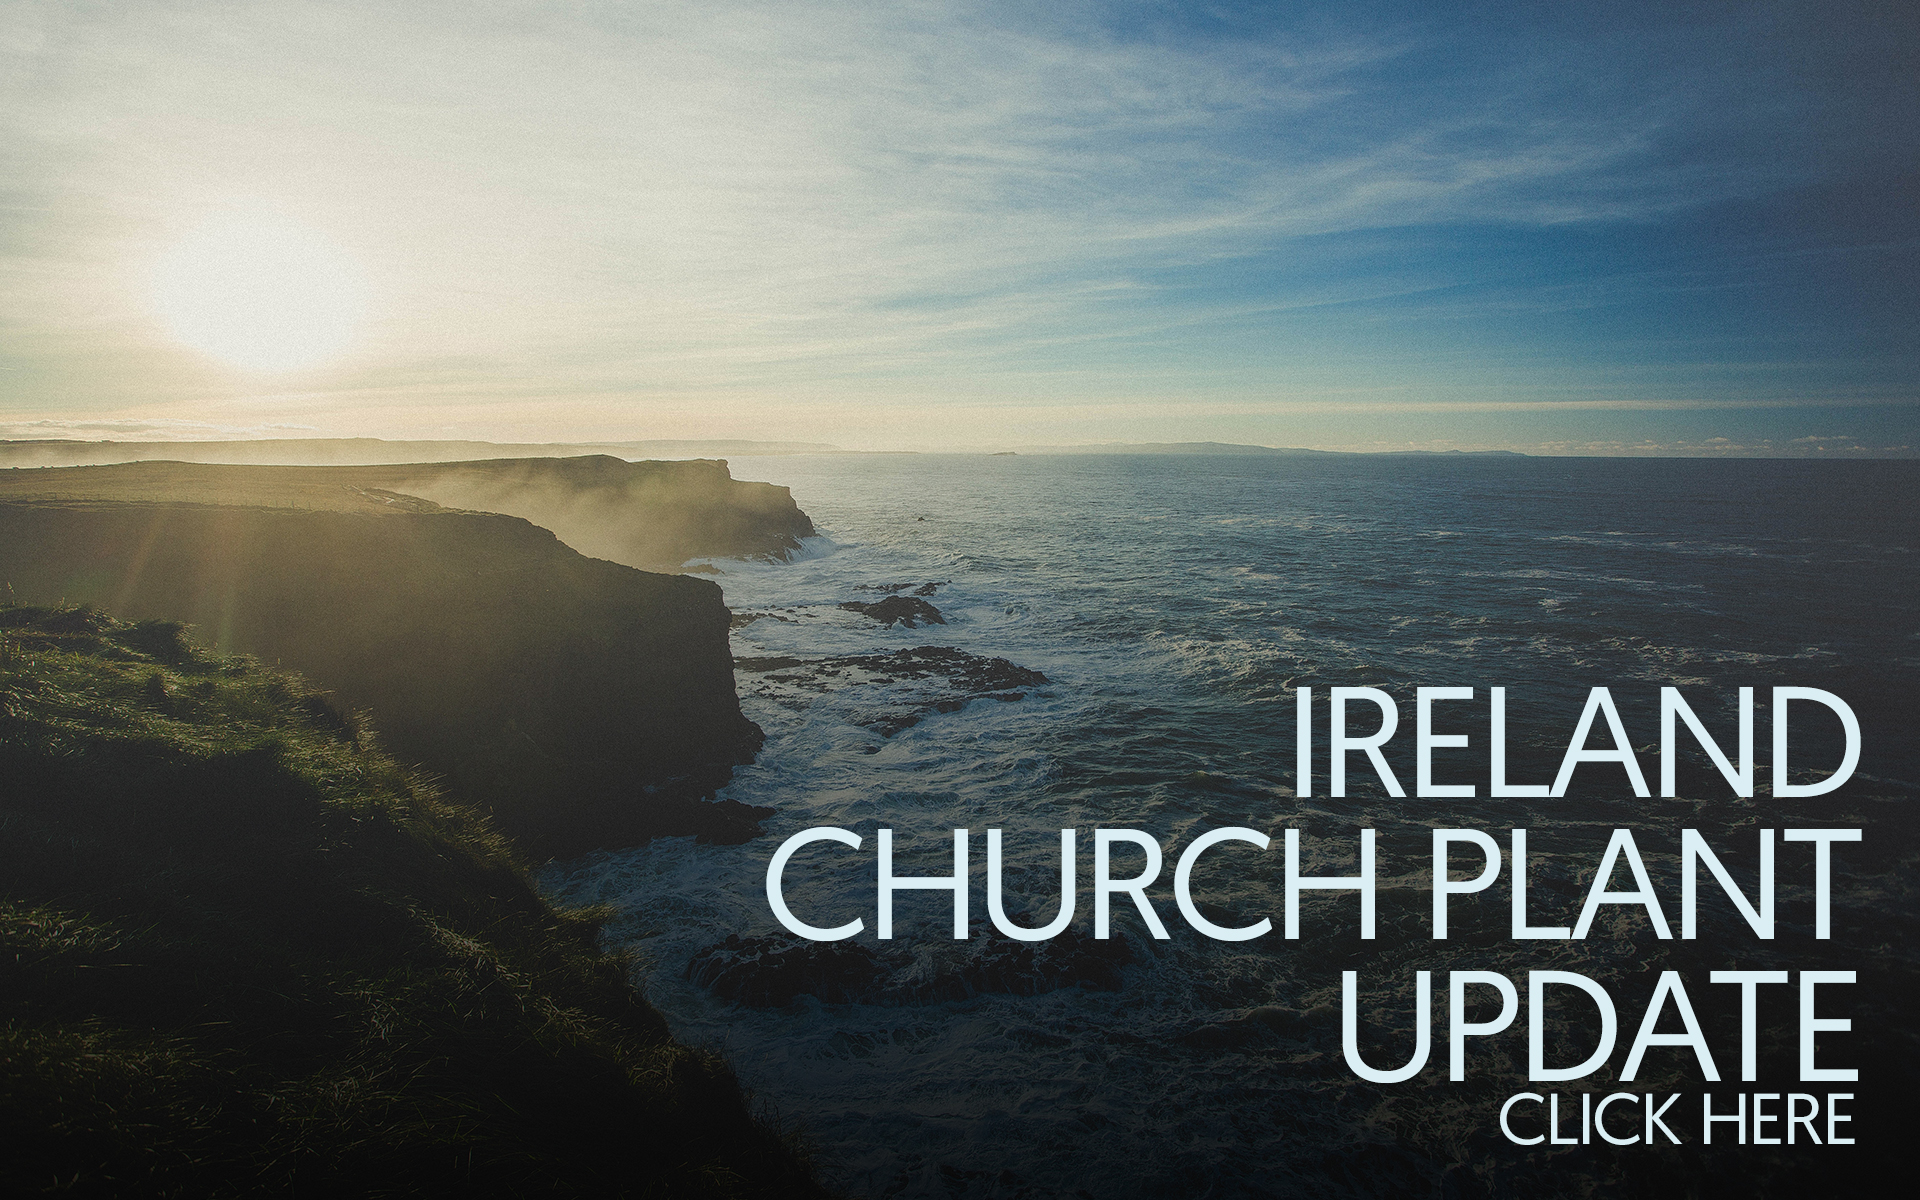 ireland church plant.jpg